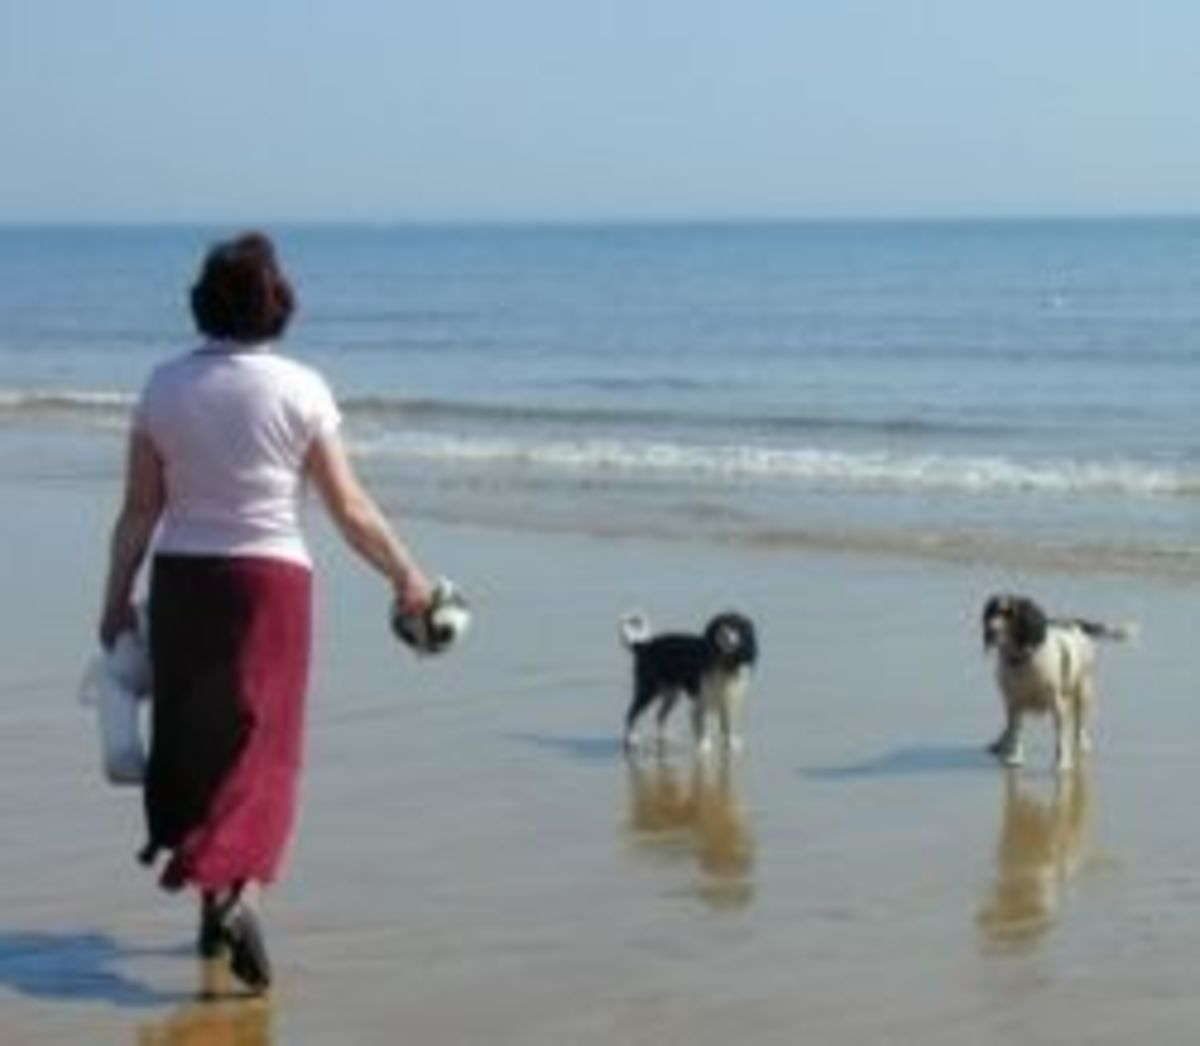 Picture of me with my back to the camera taken on Bournemouth beach with my dogs in about 2004.